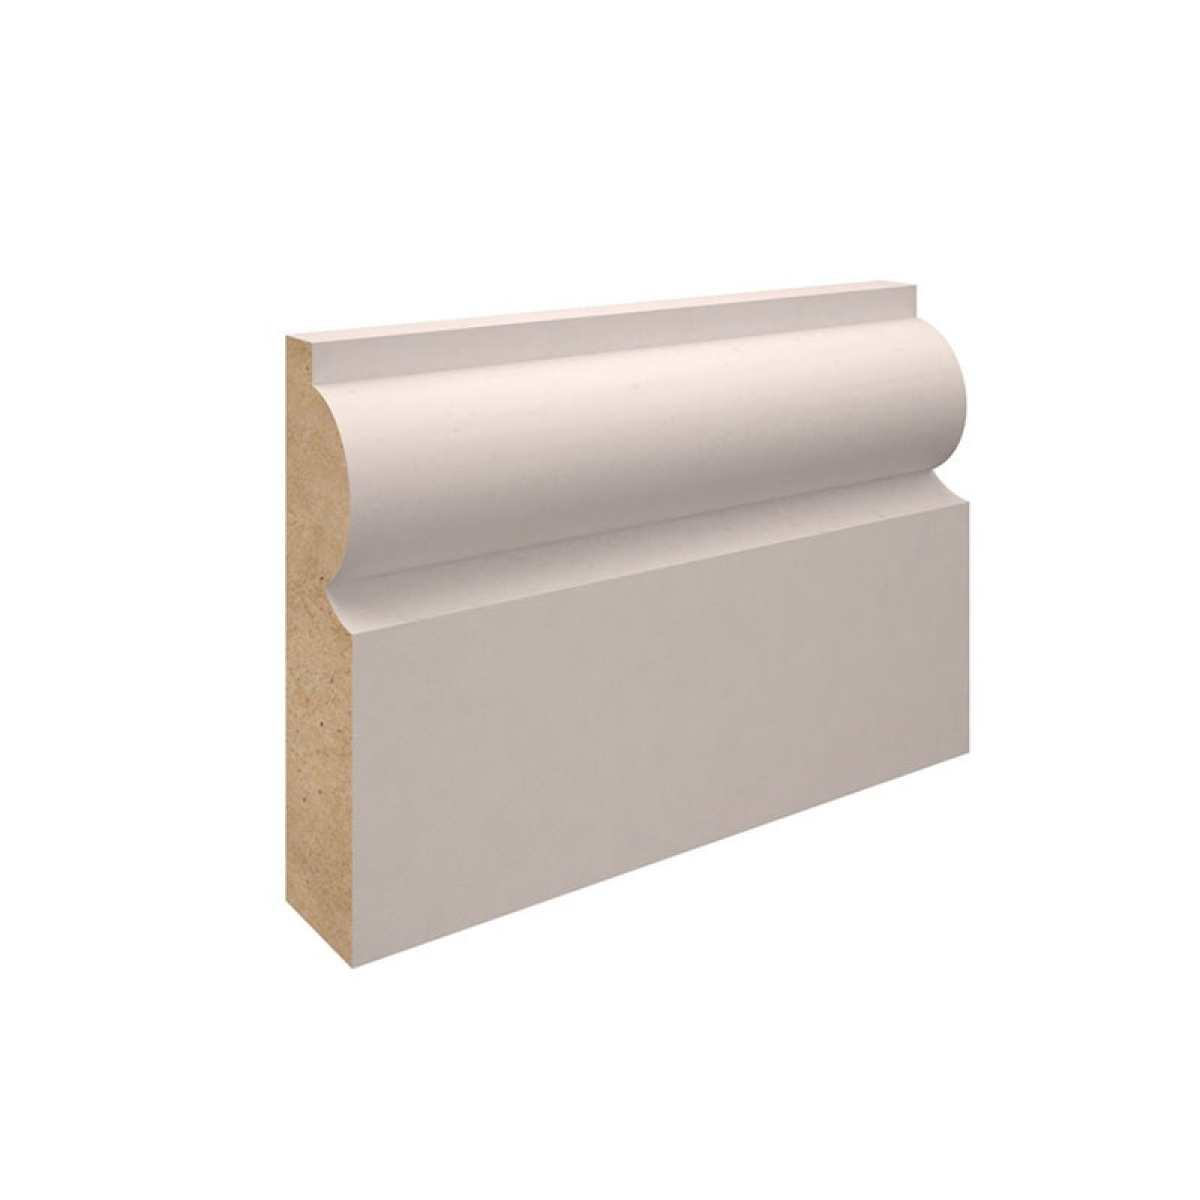 18 x 68 MDF  Torus skirting 800px 1 Image by Websters Timber